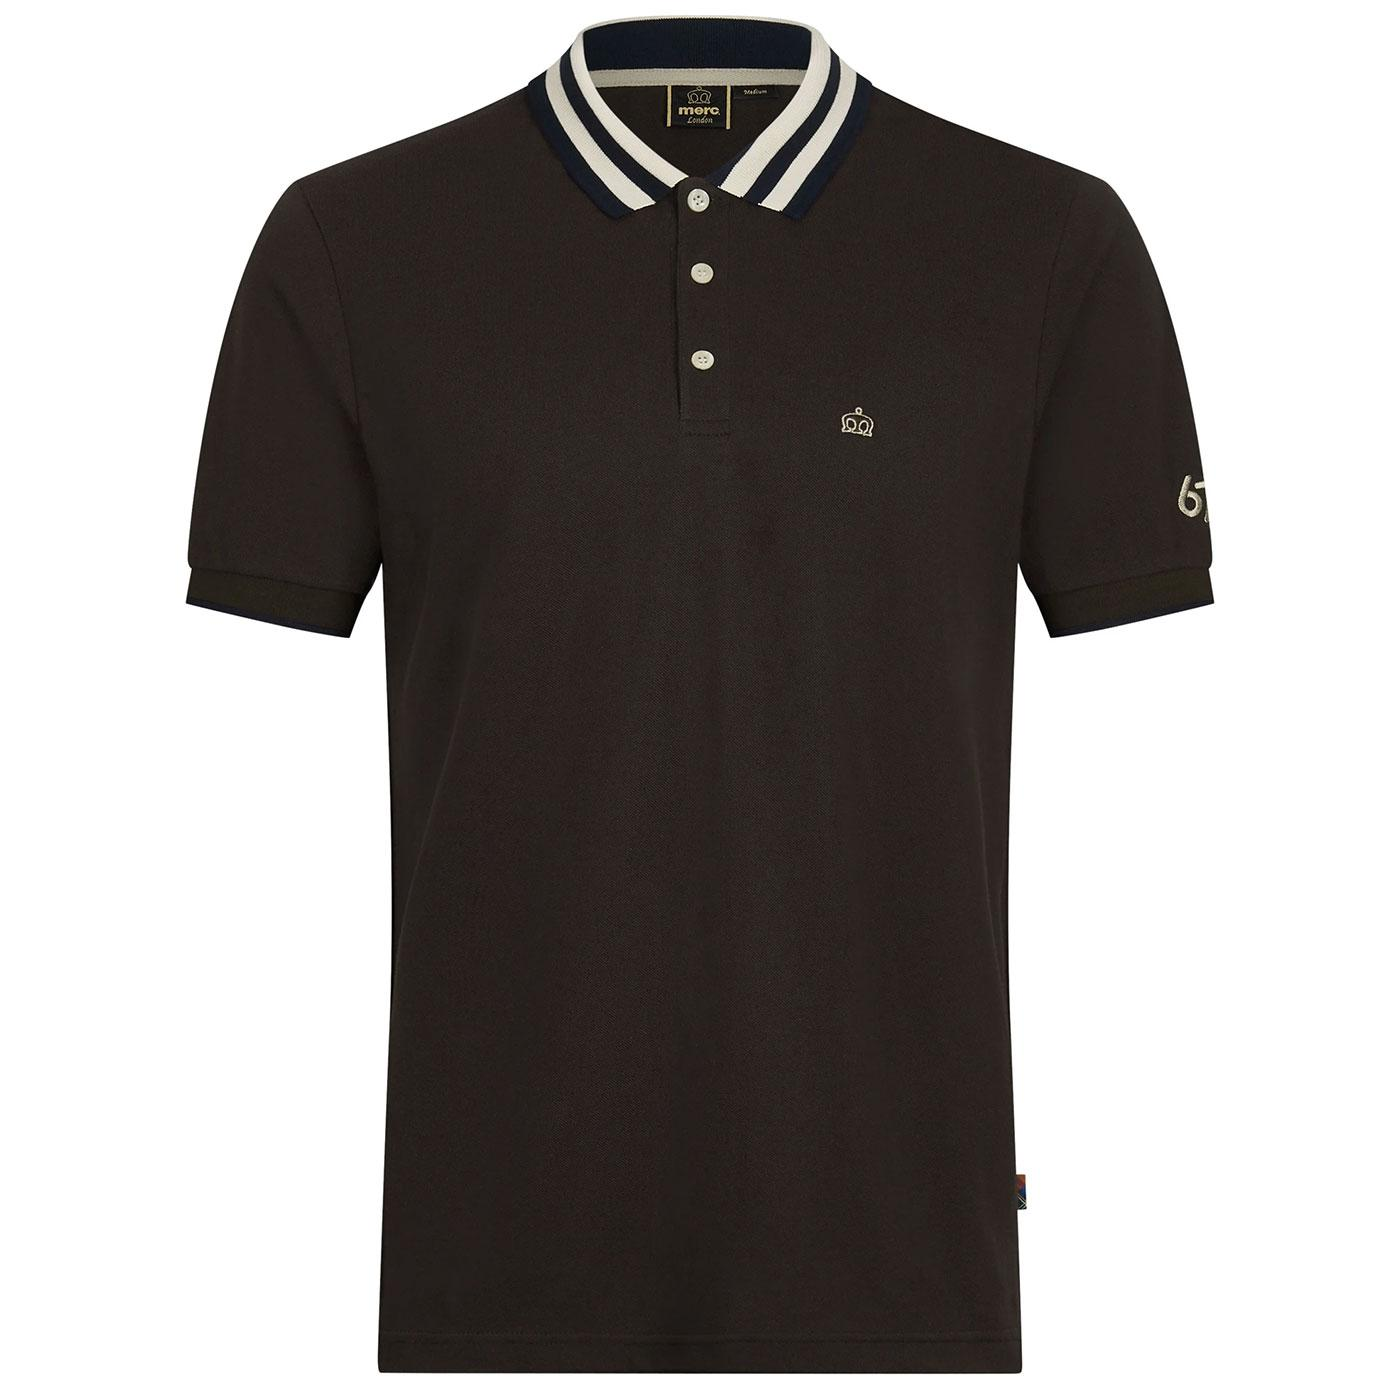 Folly MERC Retro Tipped Collar Pique Polo Shirt DB